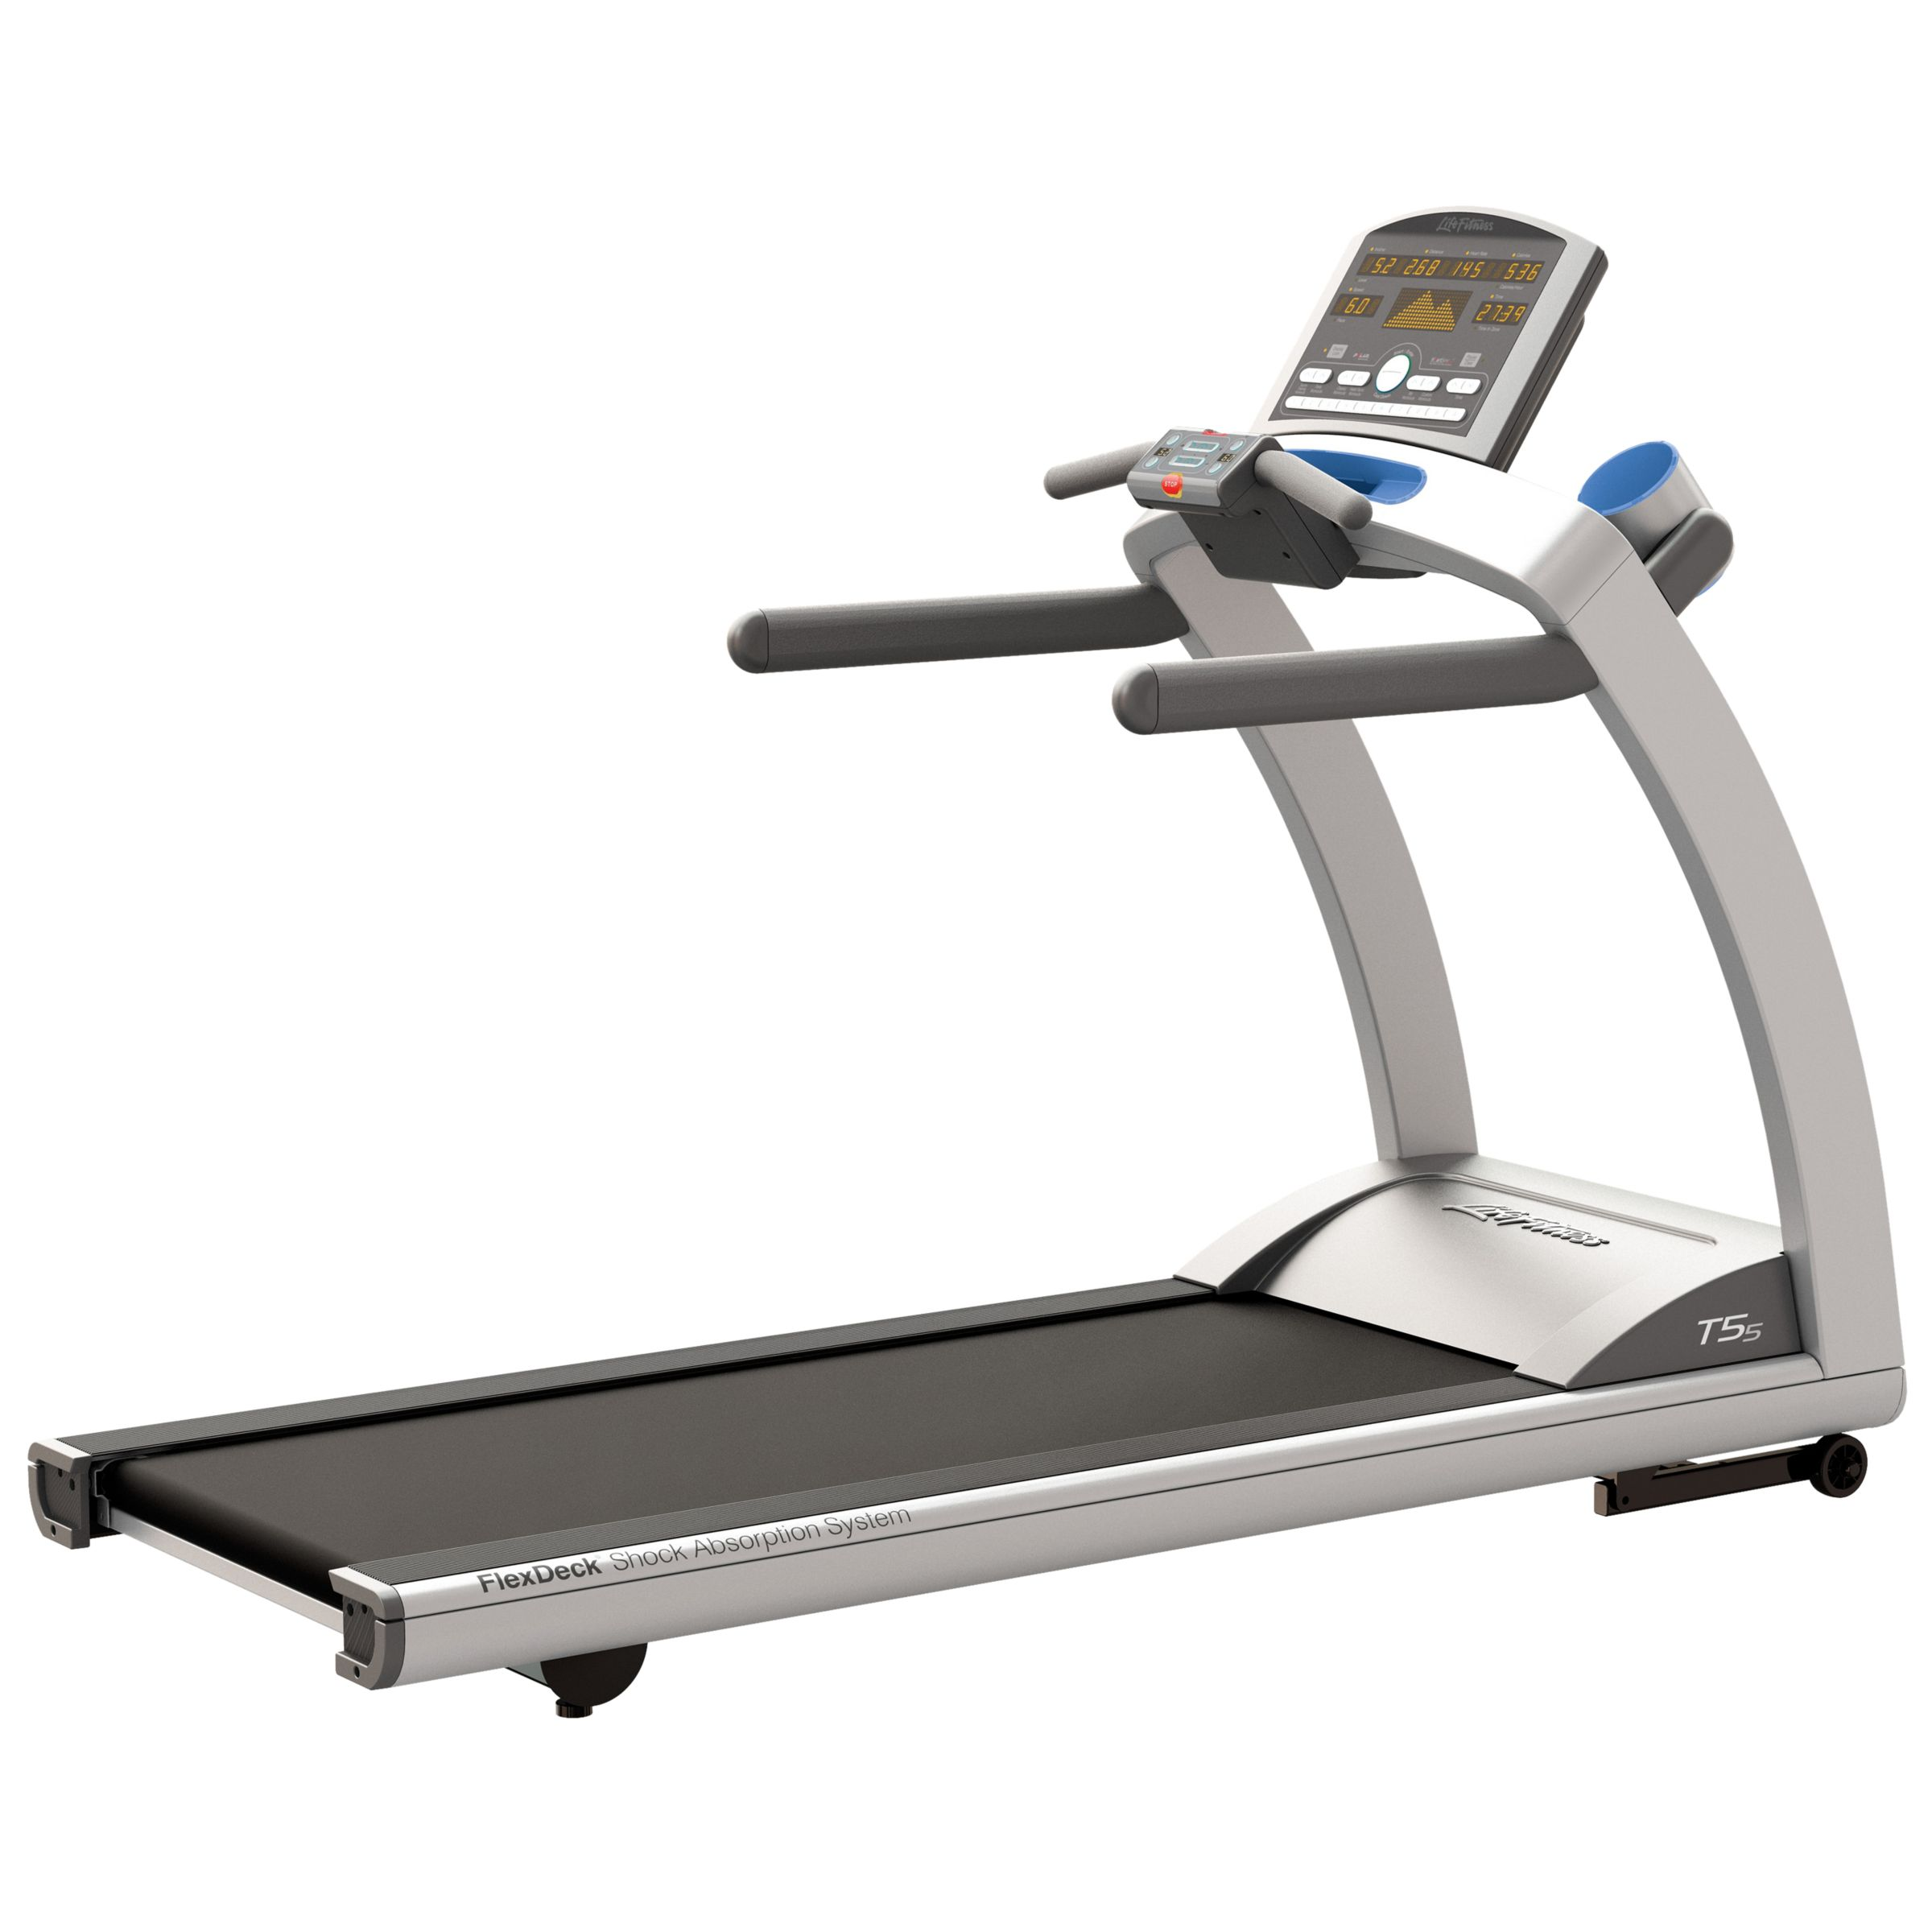 Life Fitness Activate Treadmill Manual: Pro Fitness Running Machines And Treadmills